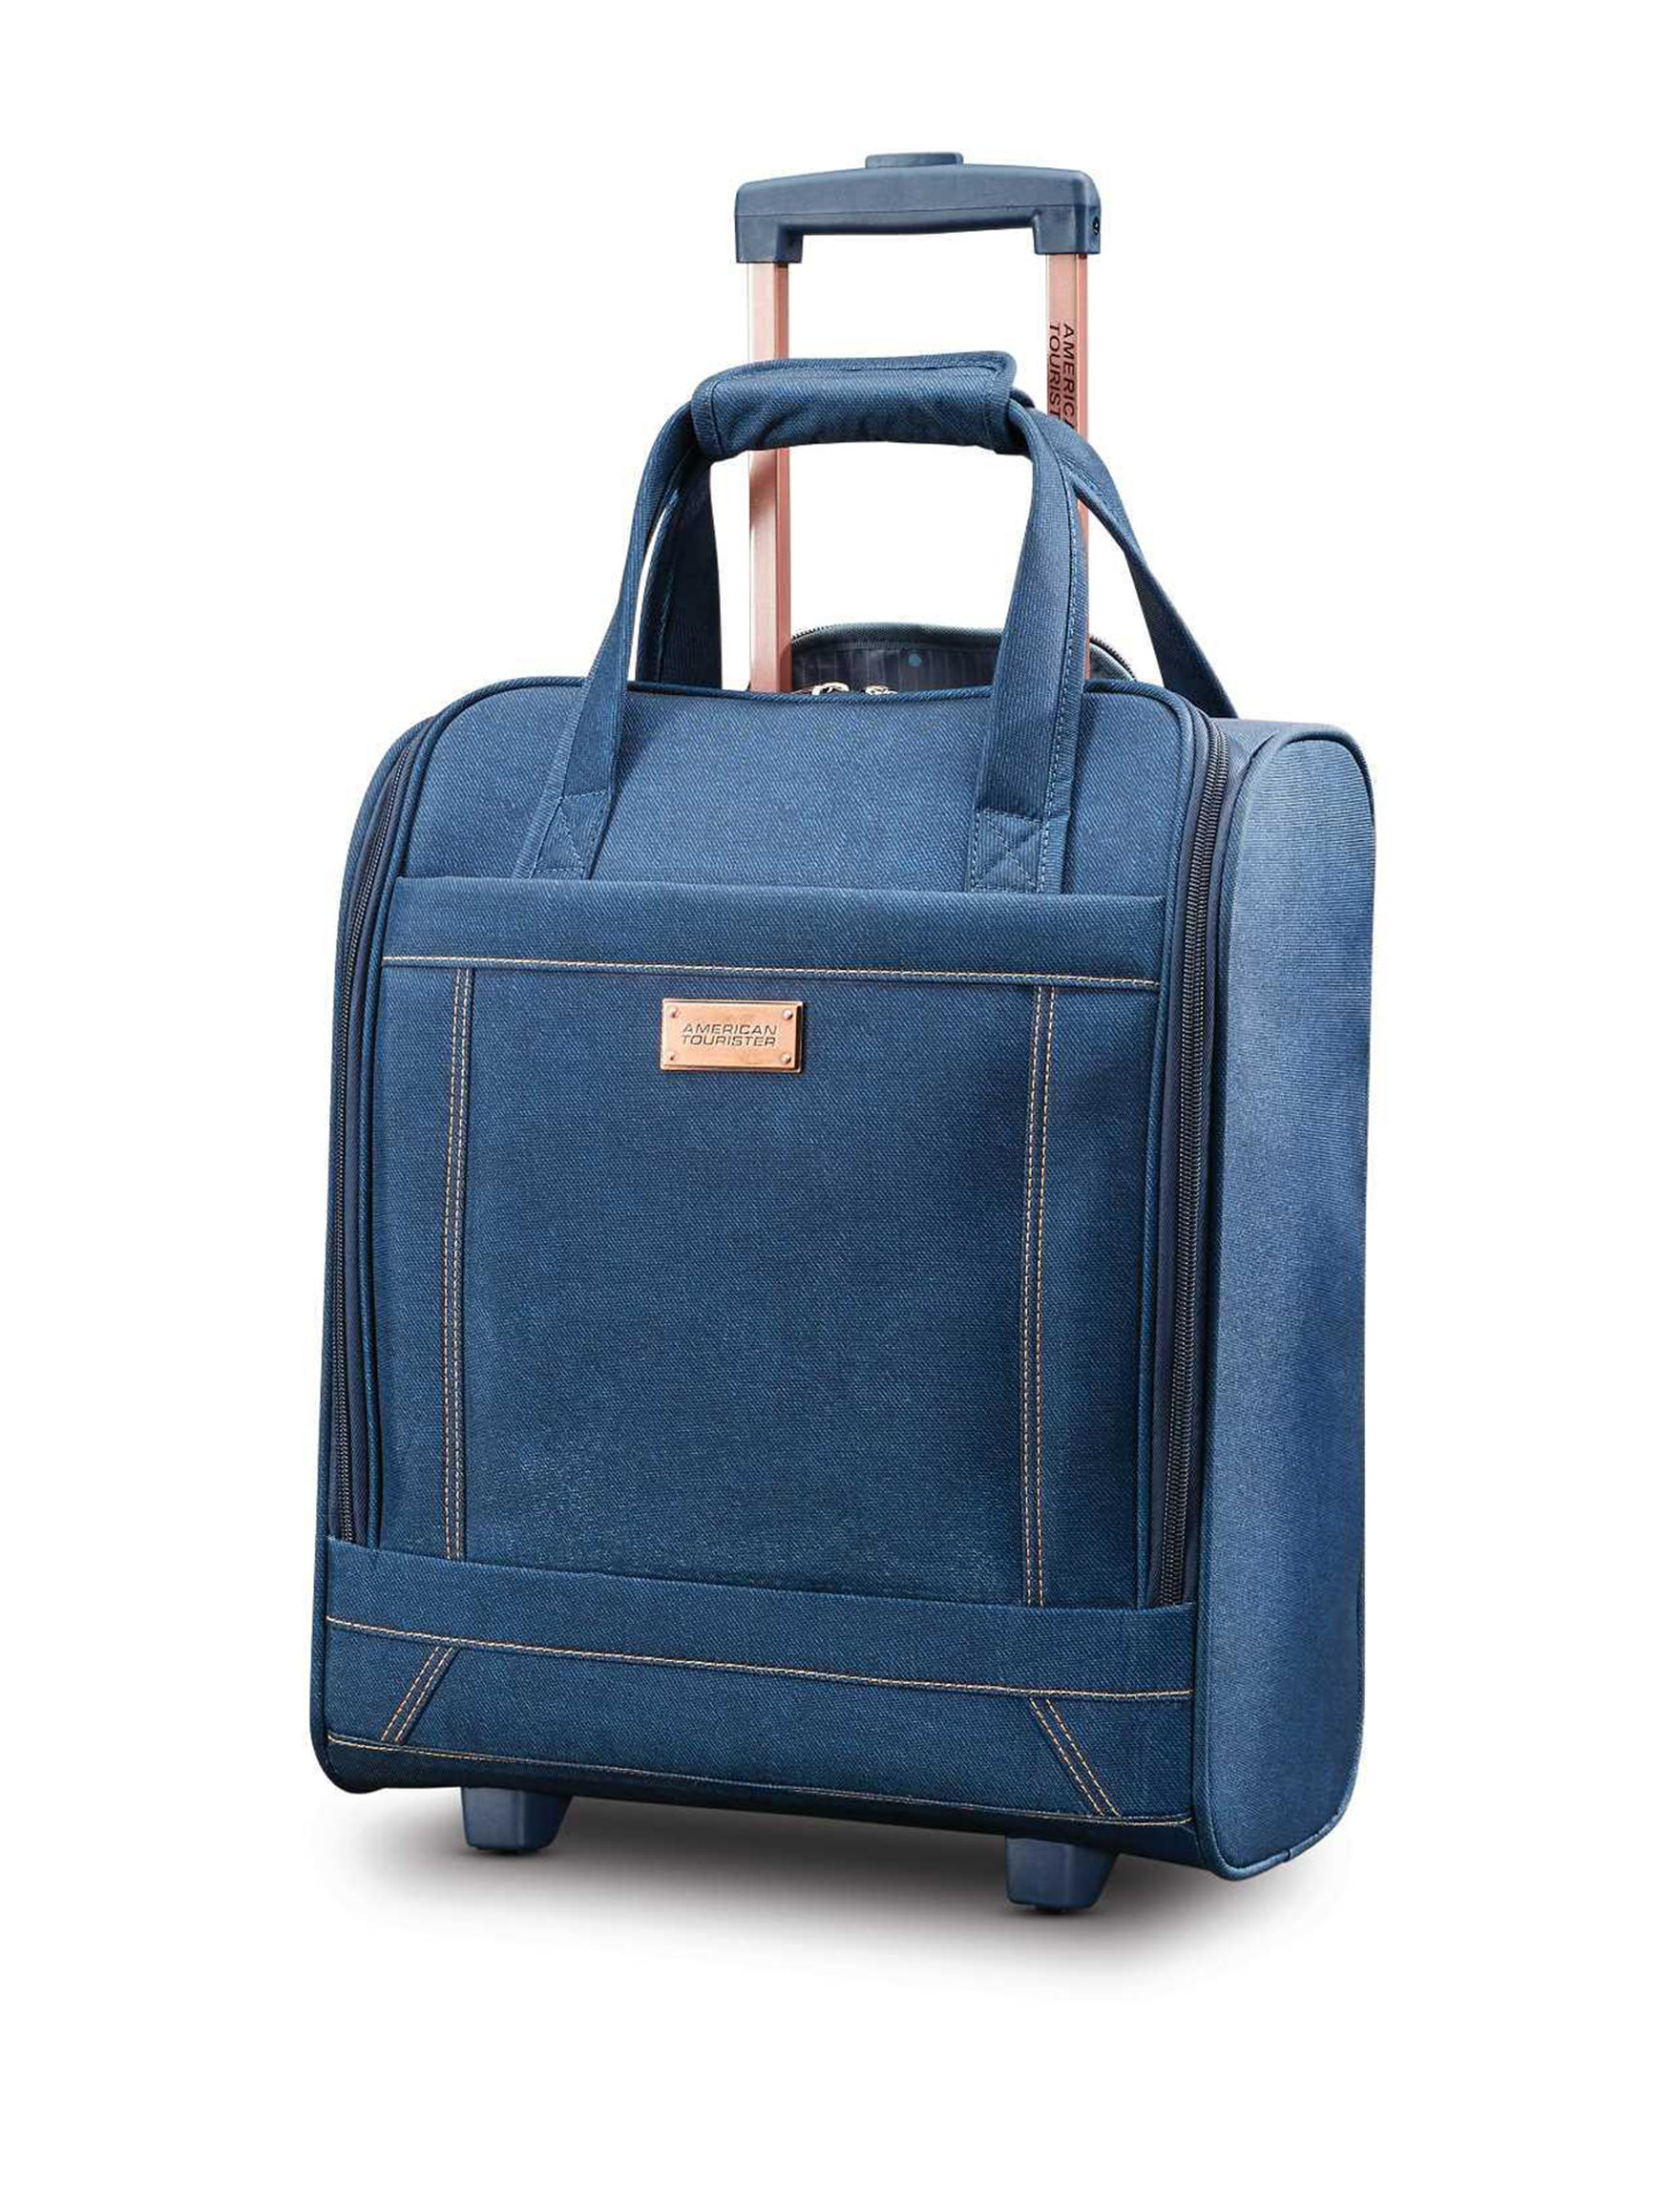 American Tourister Blue Softside Upright Spinners